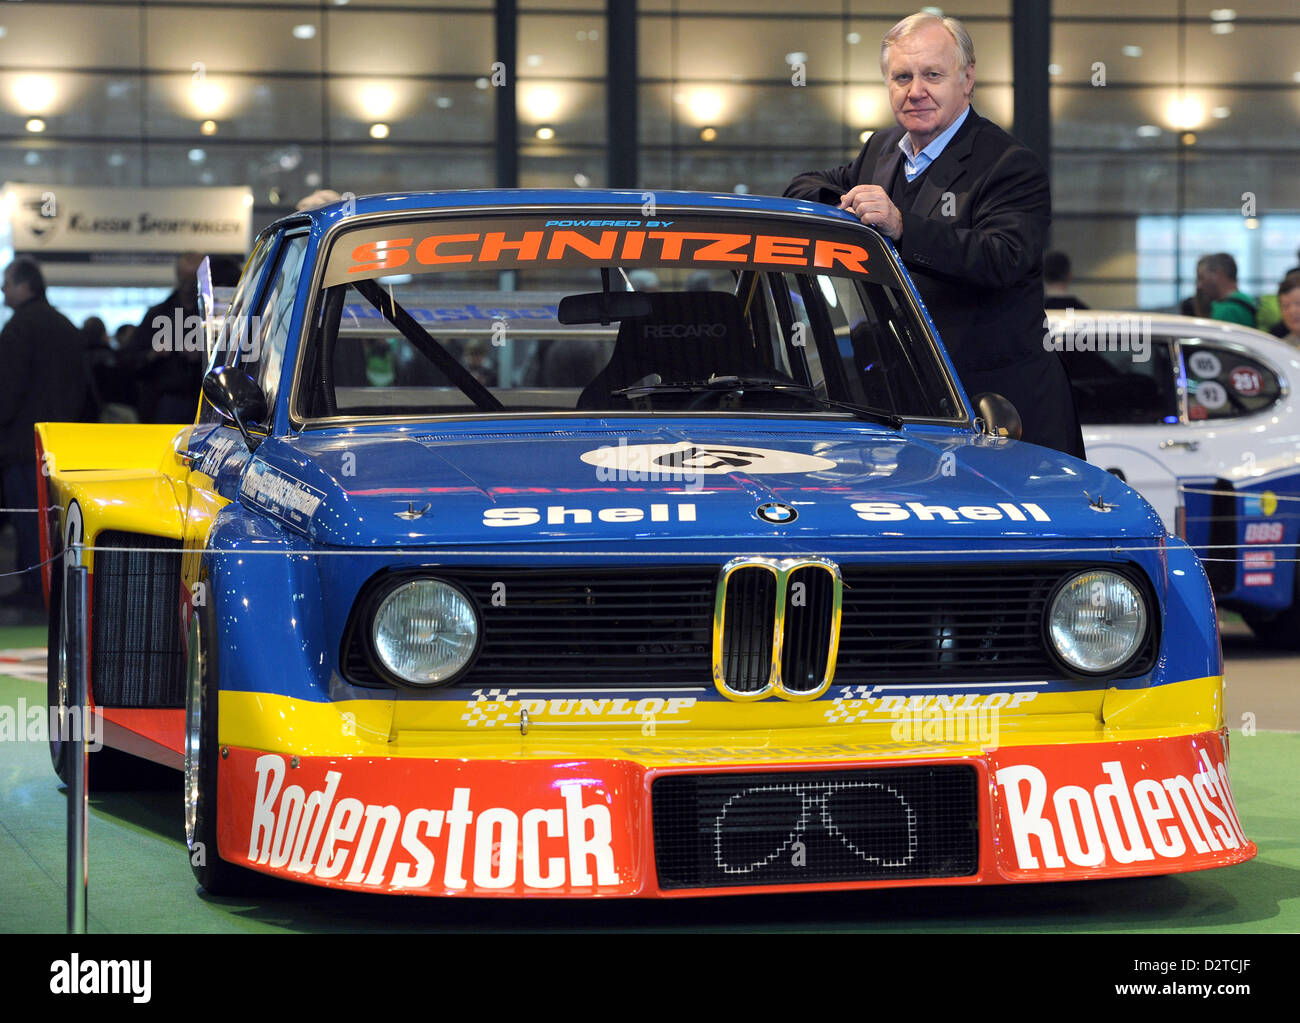 Father Of The Schnitzer Bmw Race Car From The Herbert